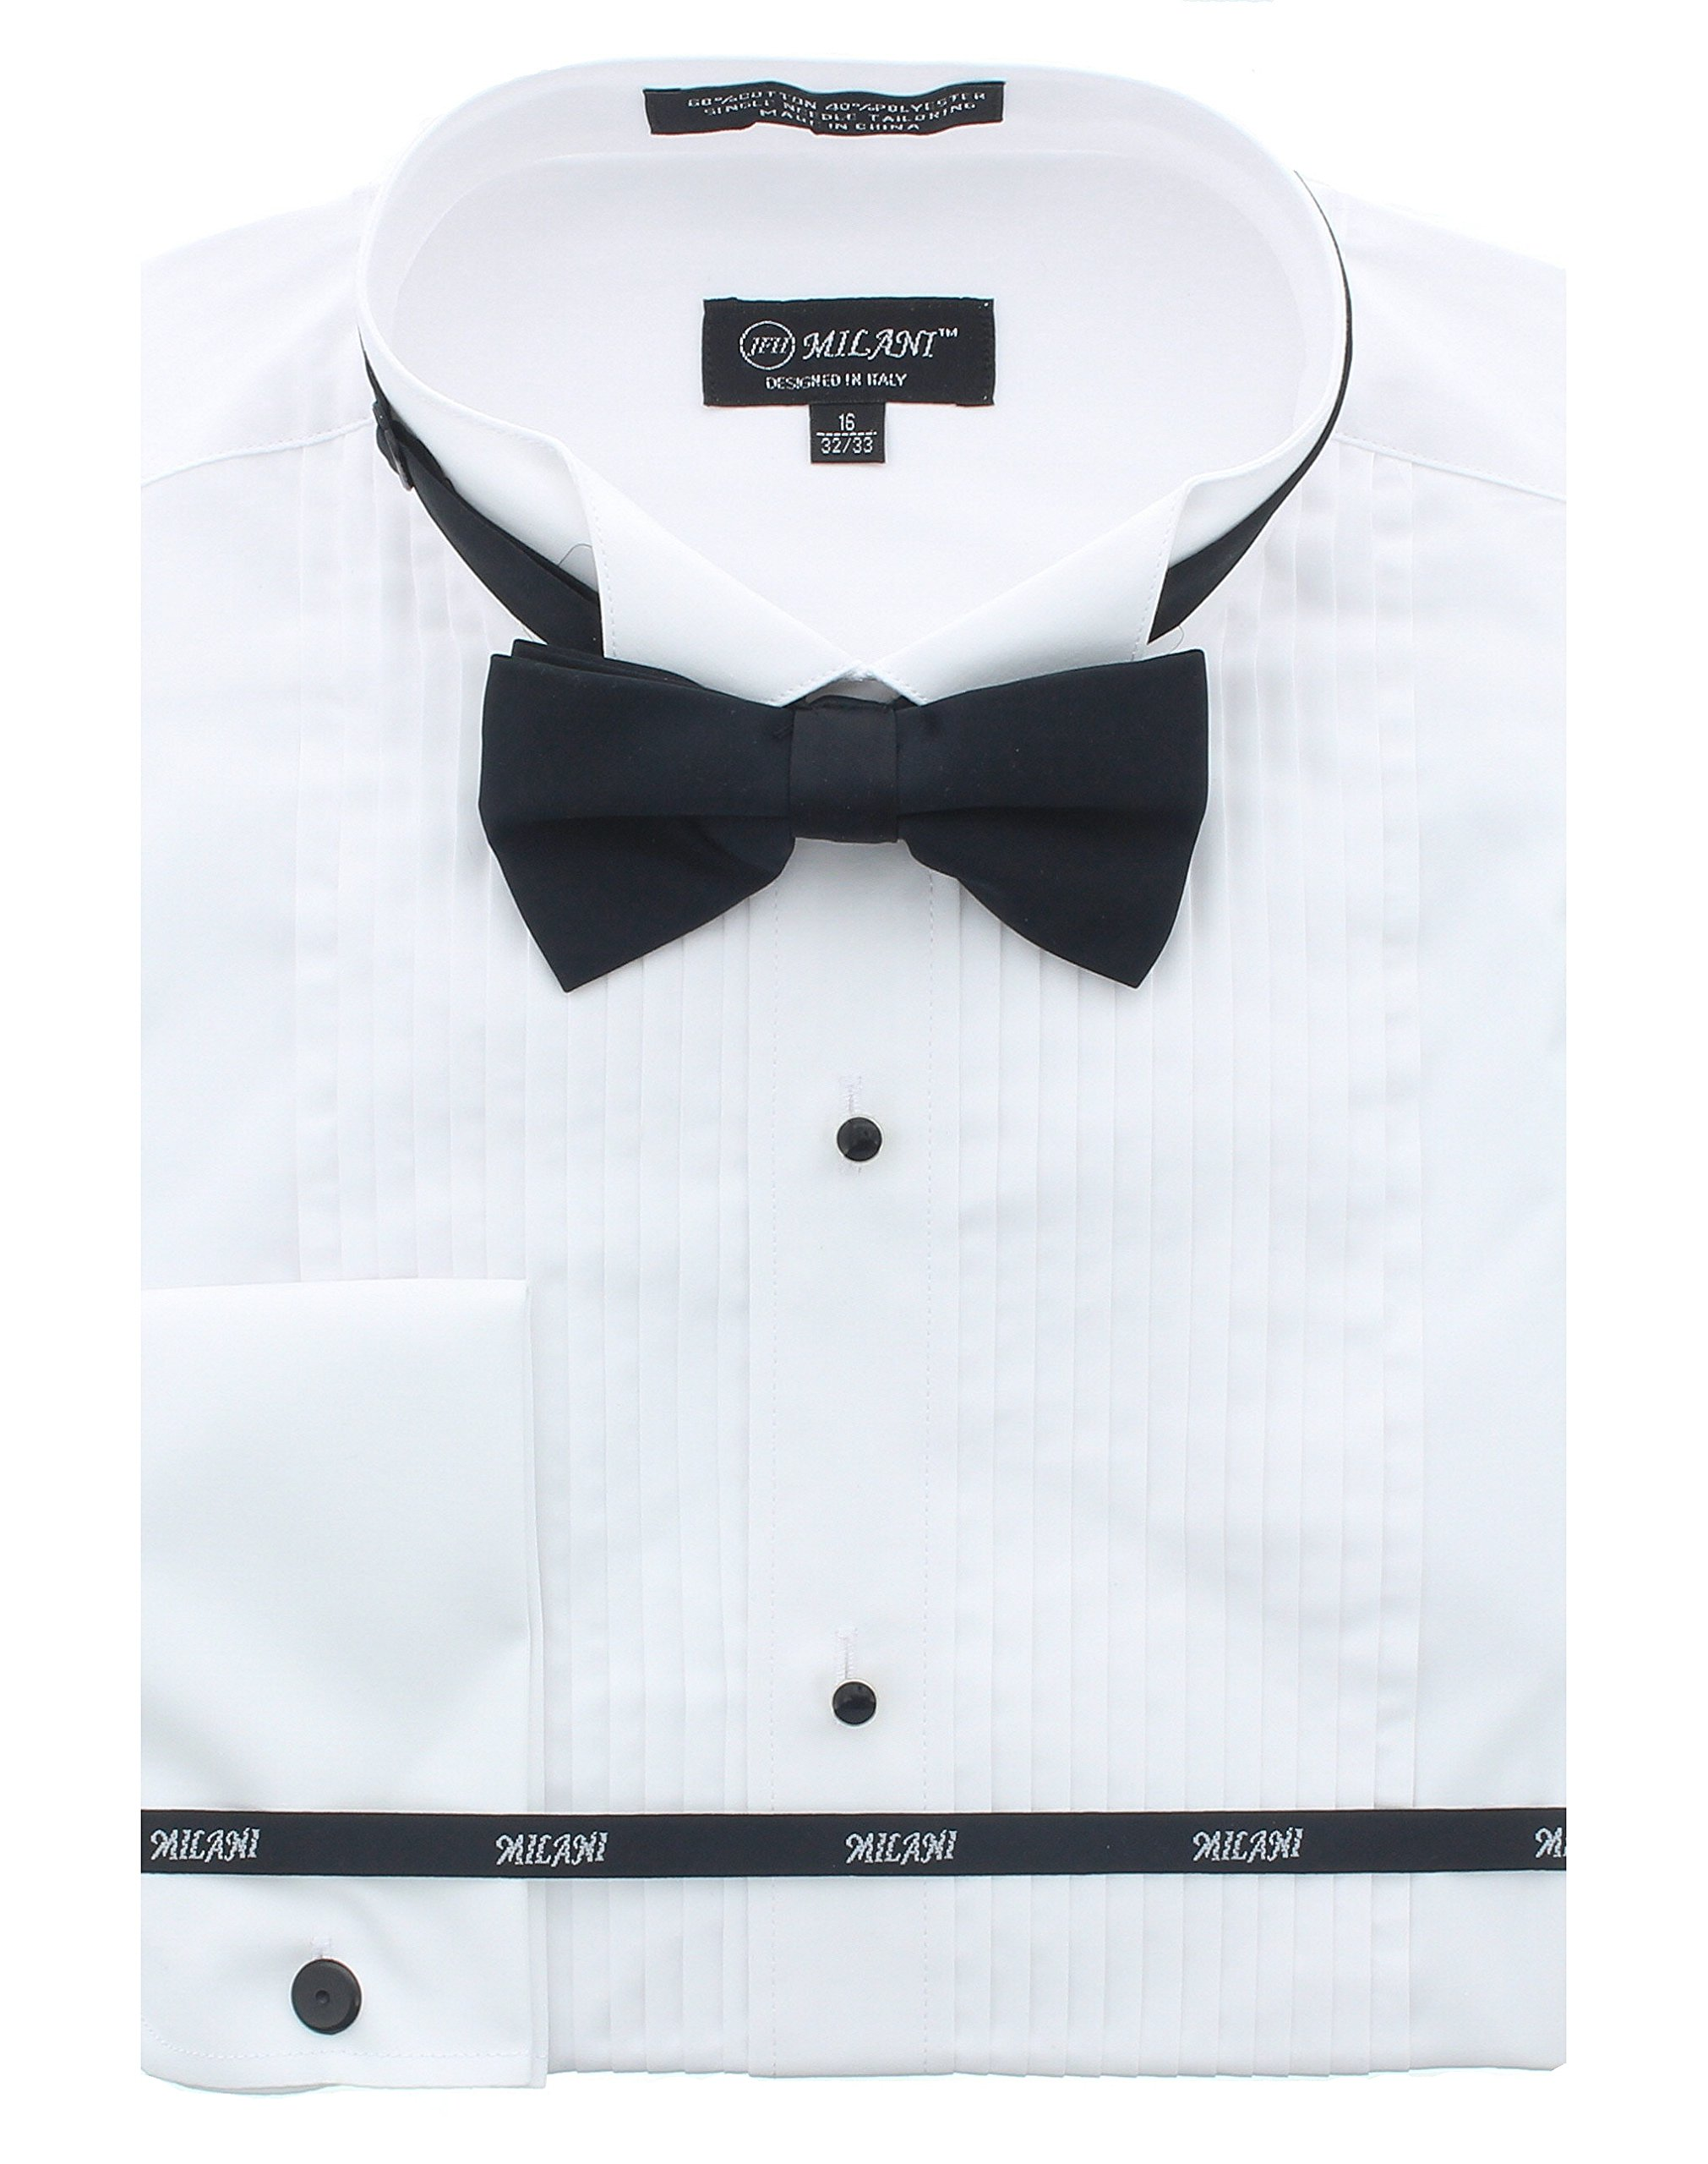 Milani Men's Tuxedo Shirt With French Cuffs And Bow Tie 17.5'', 34/35 White by Milani